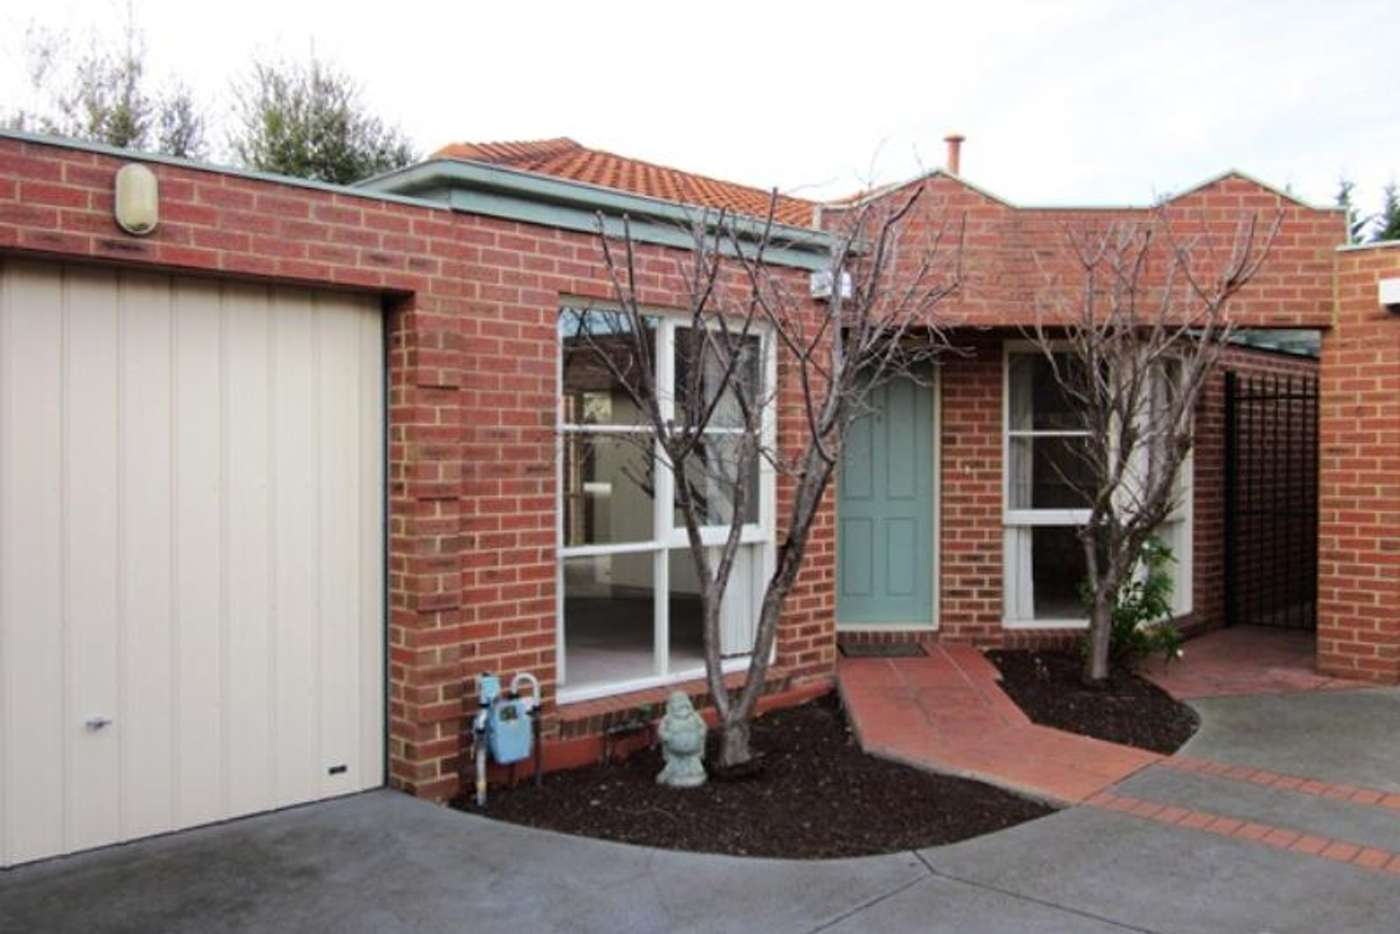 Main view of Homely unit listing, 4/206 Murrumbeena Road, Murrumbeena VIC 3163